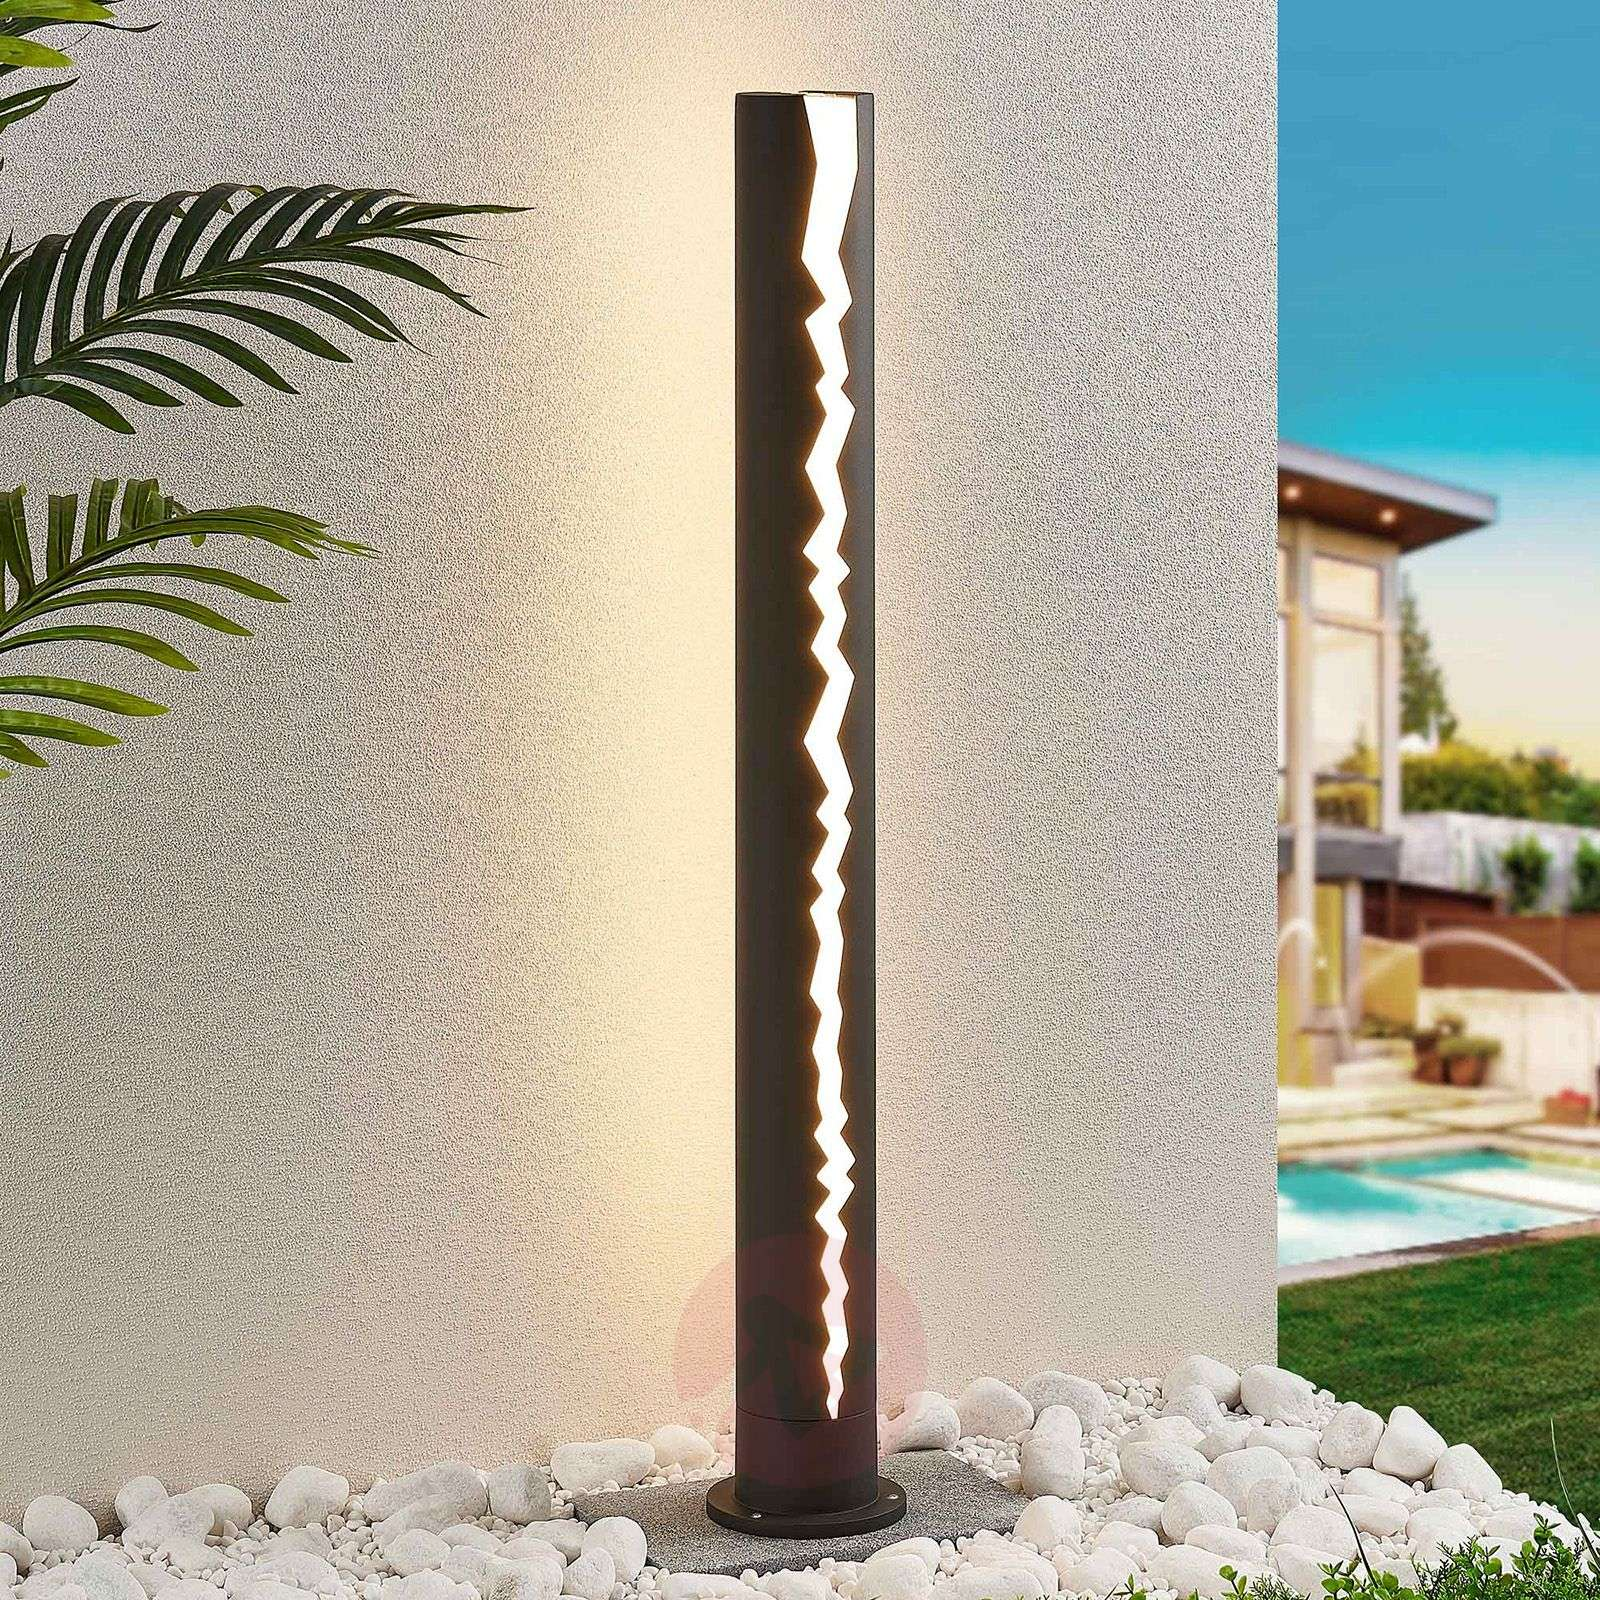 LED tuinpadverlichting in donkergrijs, 100 cm-9619154-03